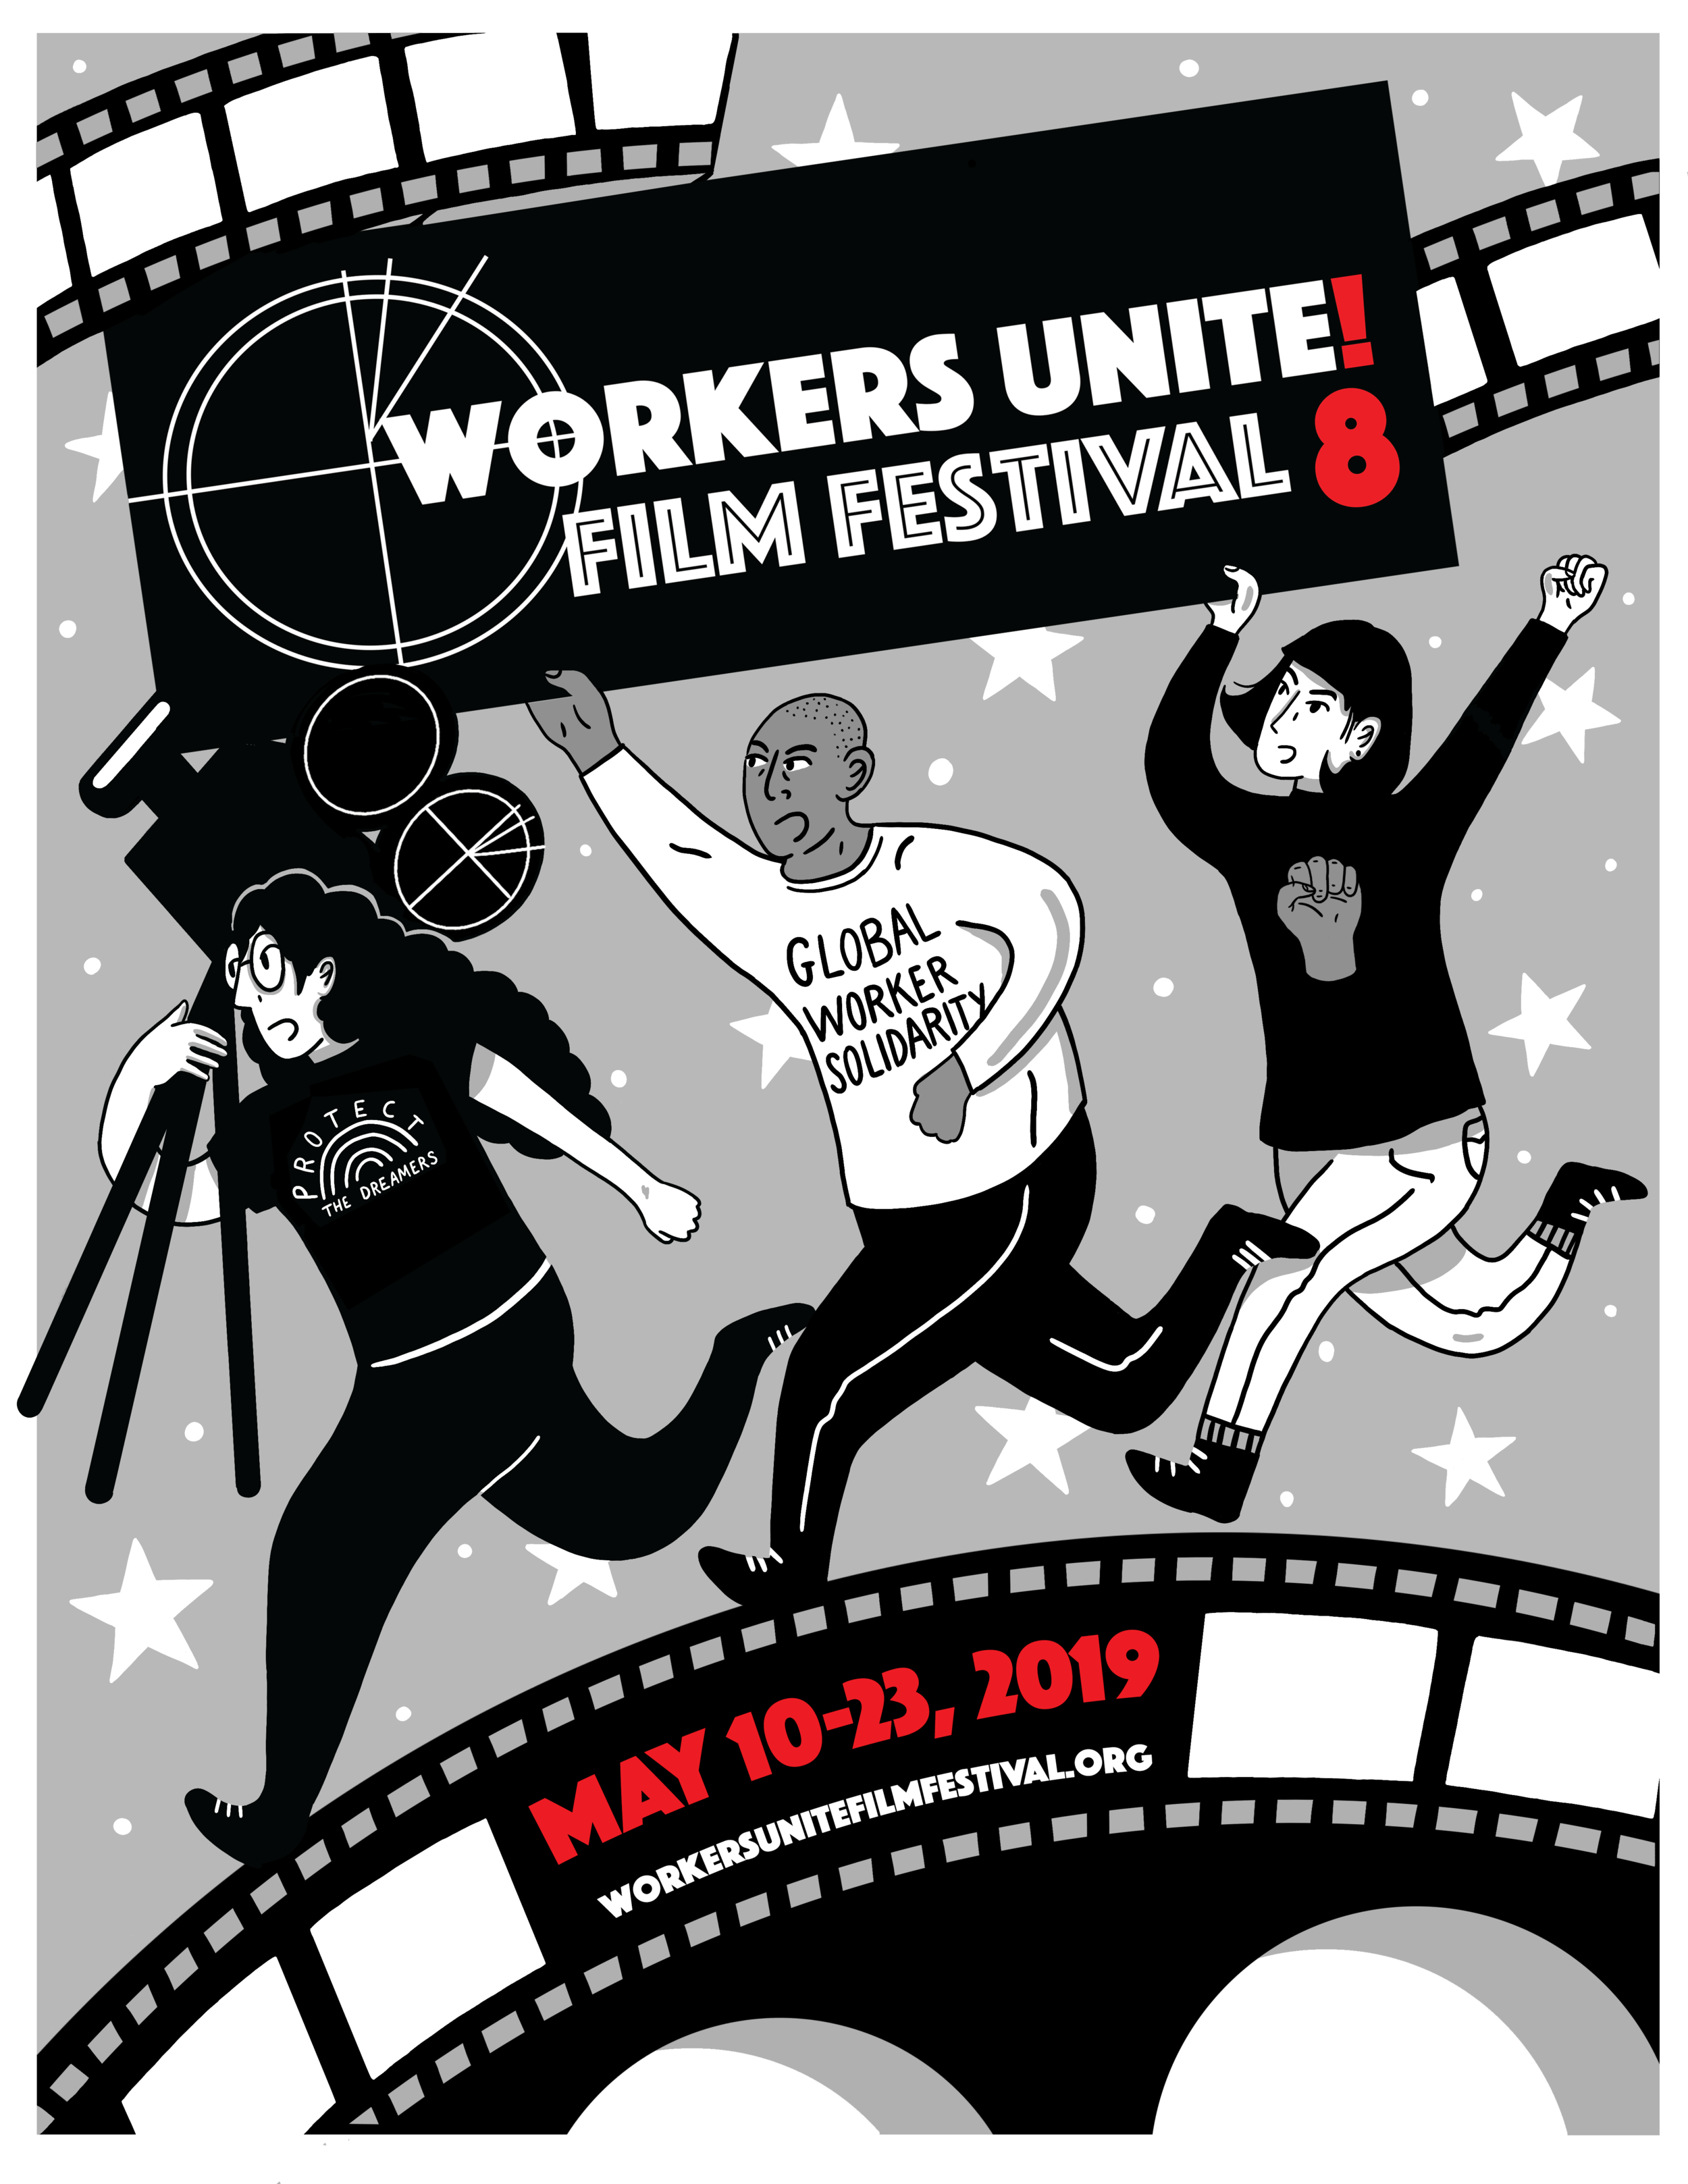 NYC'S ONLY MAJOR LABOR/WORKER THEMED FILM FESTIVAL